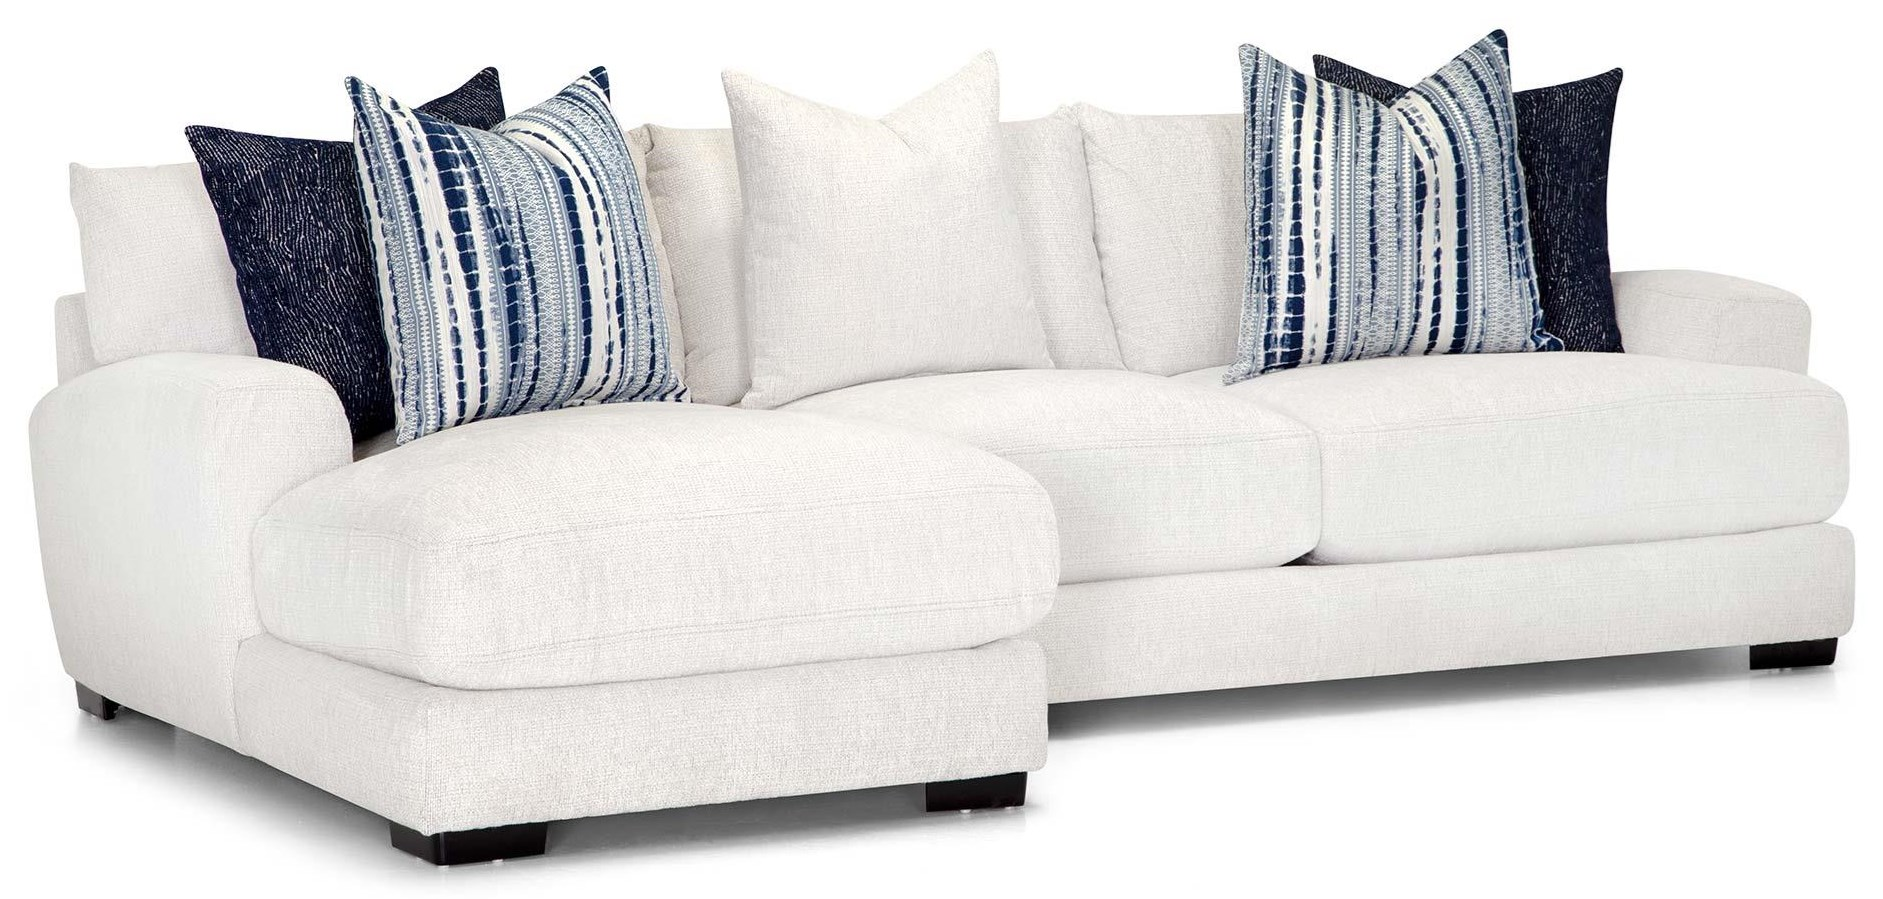 903 Two Piece Sectional -White by Franklin at Furniture Fair - North Carolina